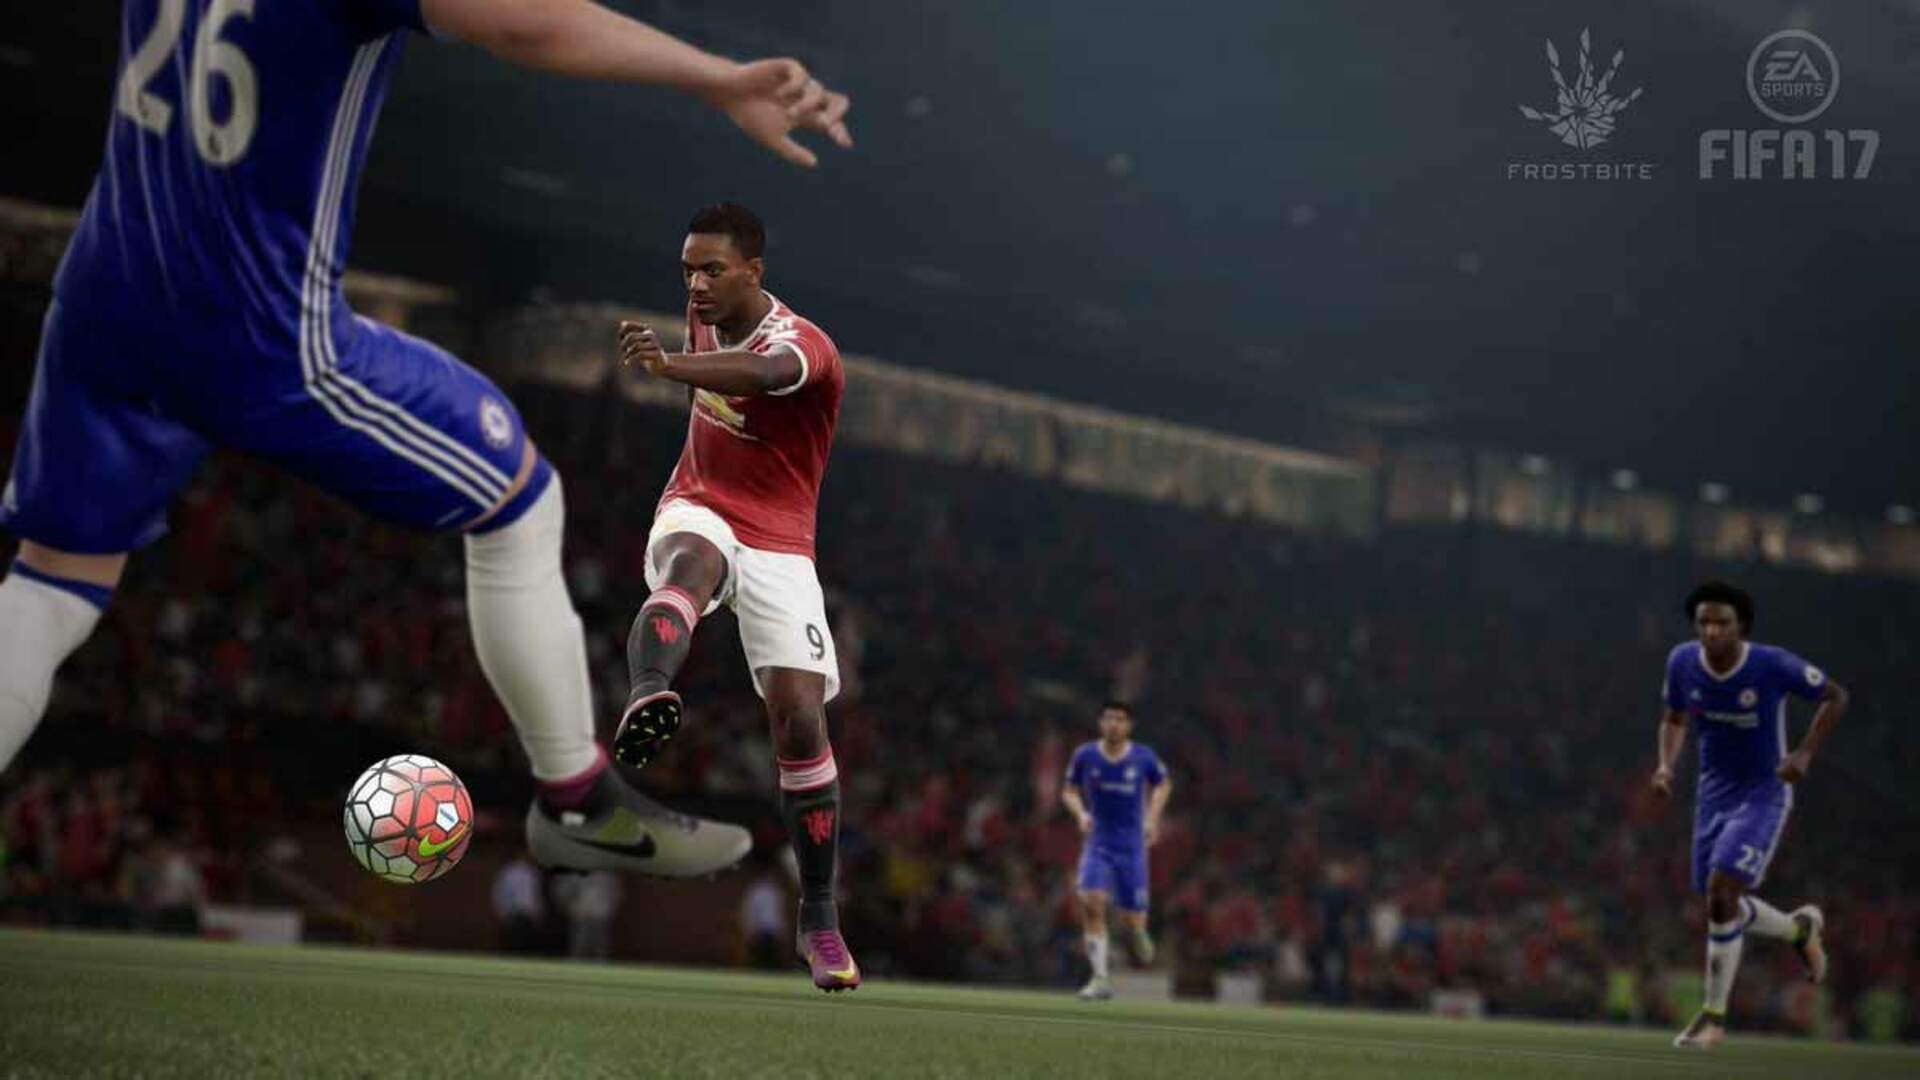 FIFA 17 - The Best Players at Free Kicks and the Best Goalkeepers